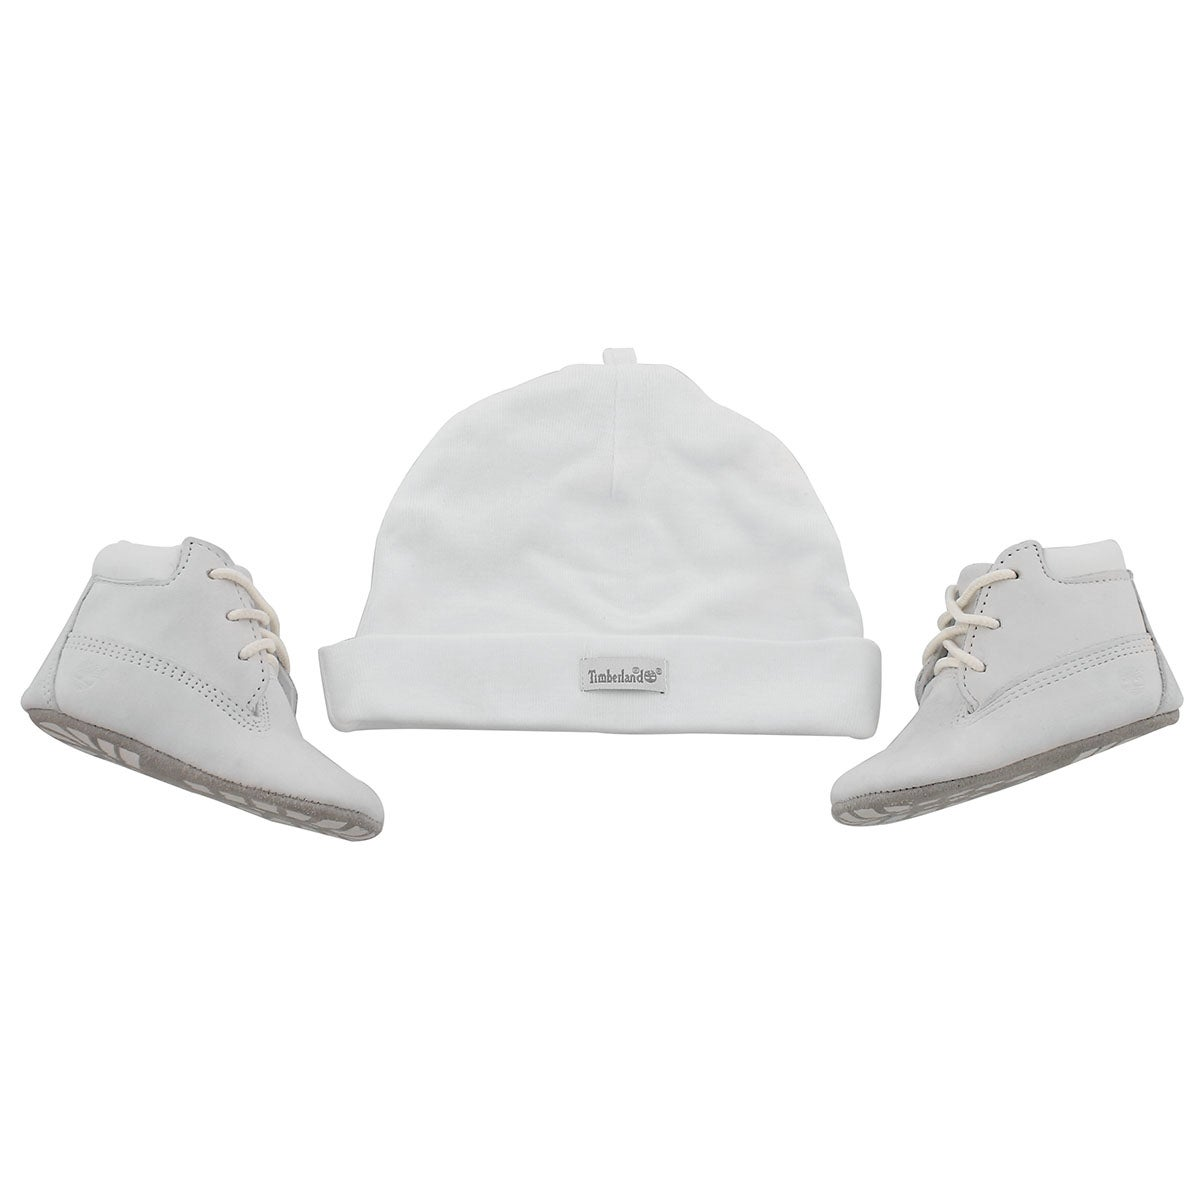 Infs white Crib Bootie with hat